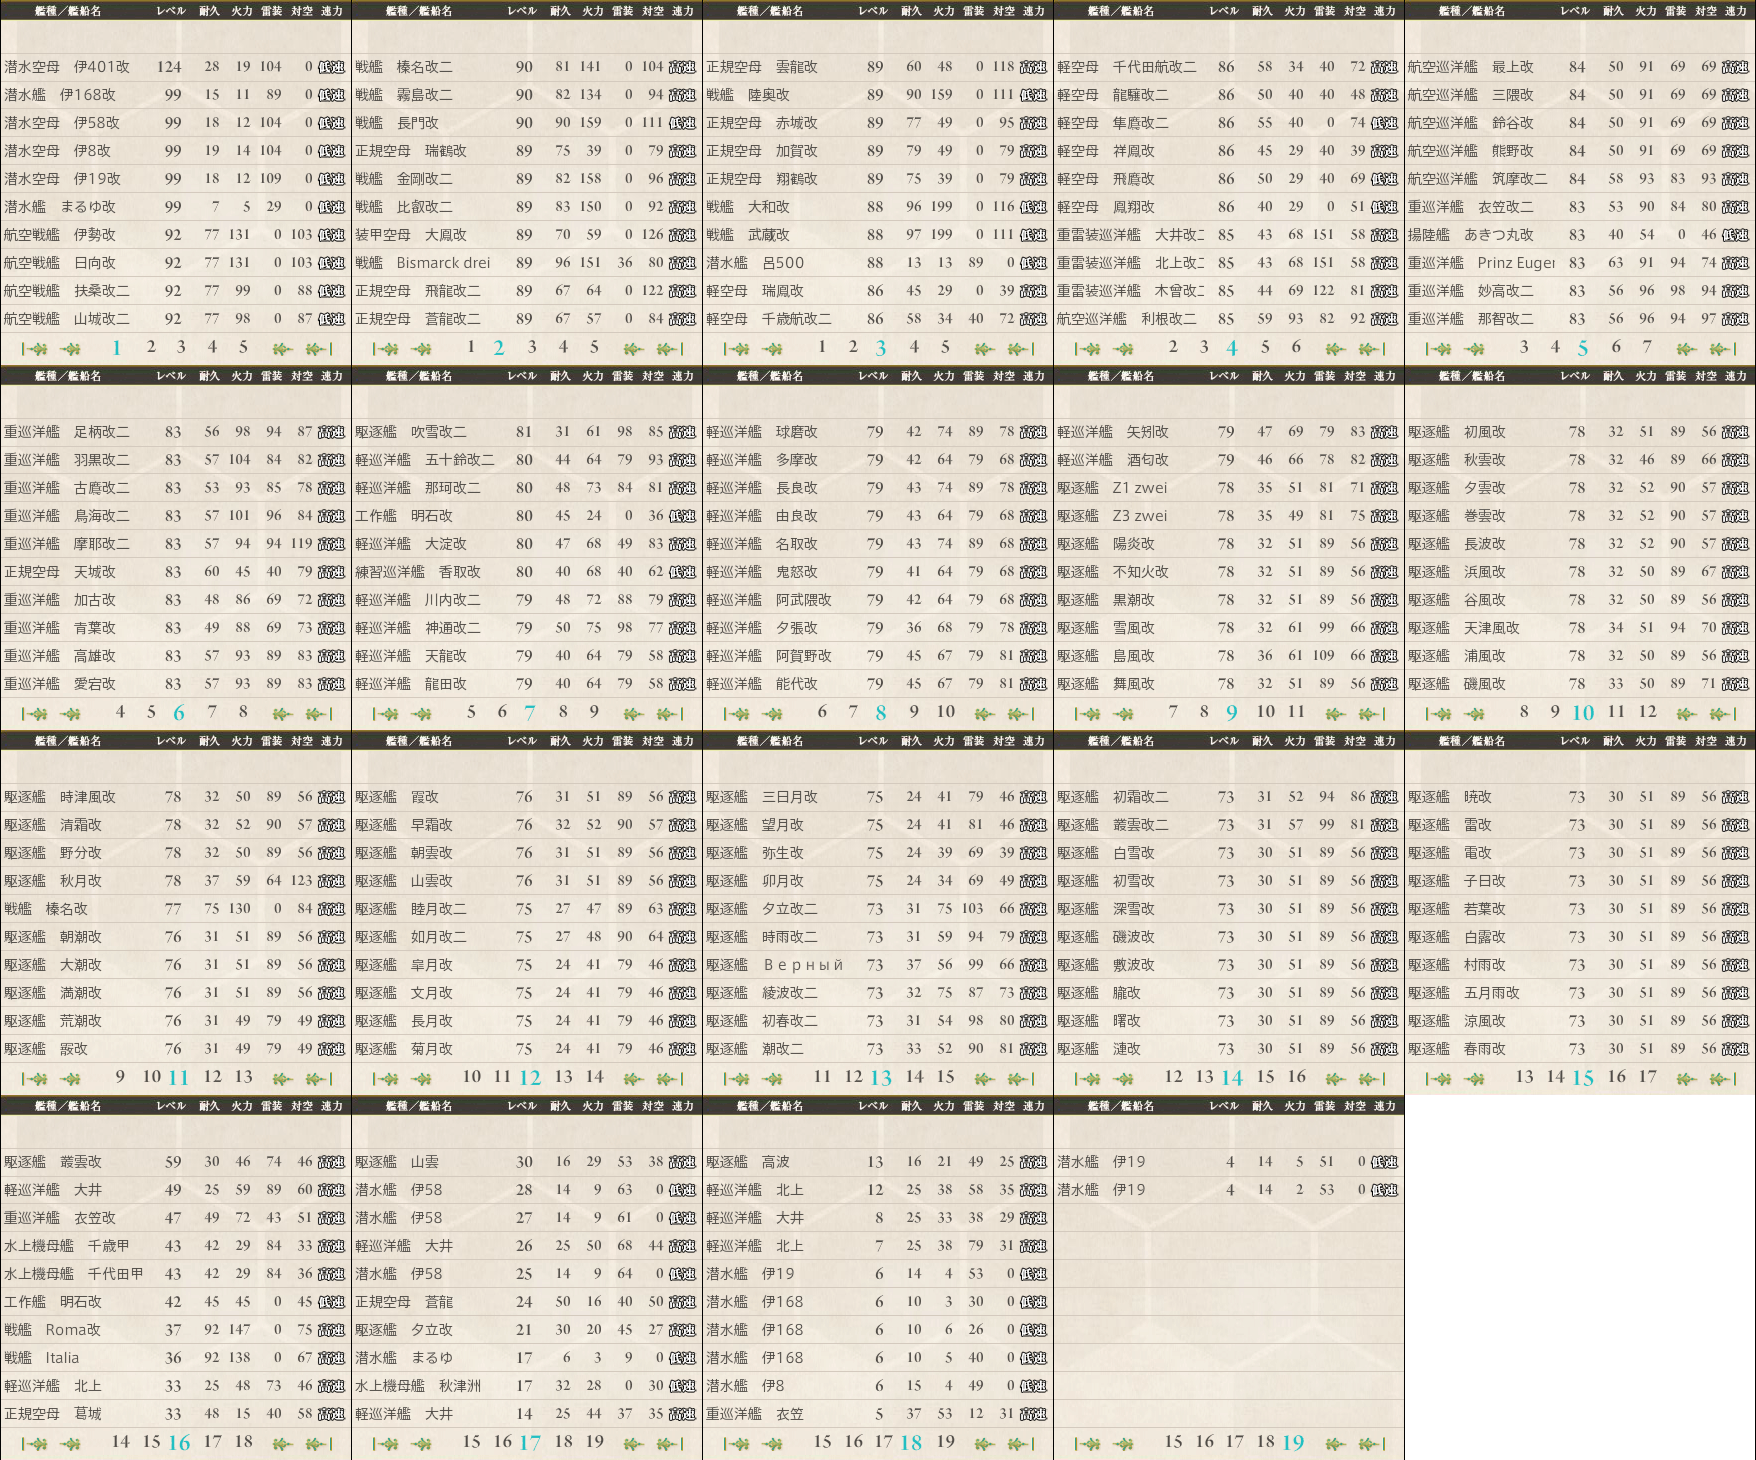 data.kancolle.levelsort.20150517.png